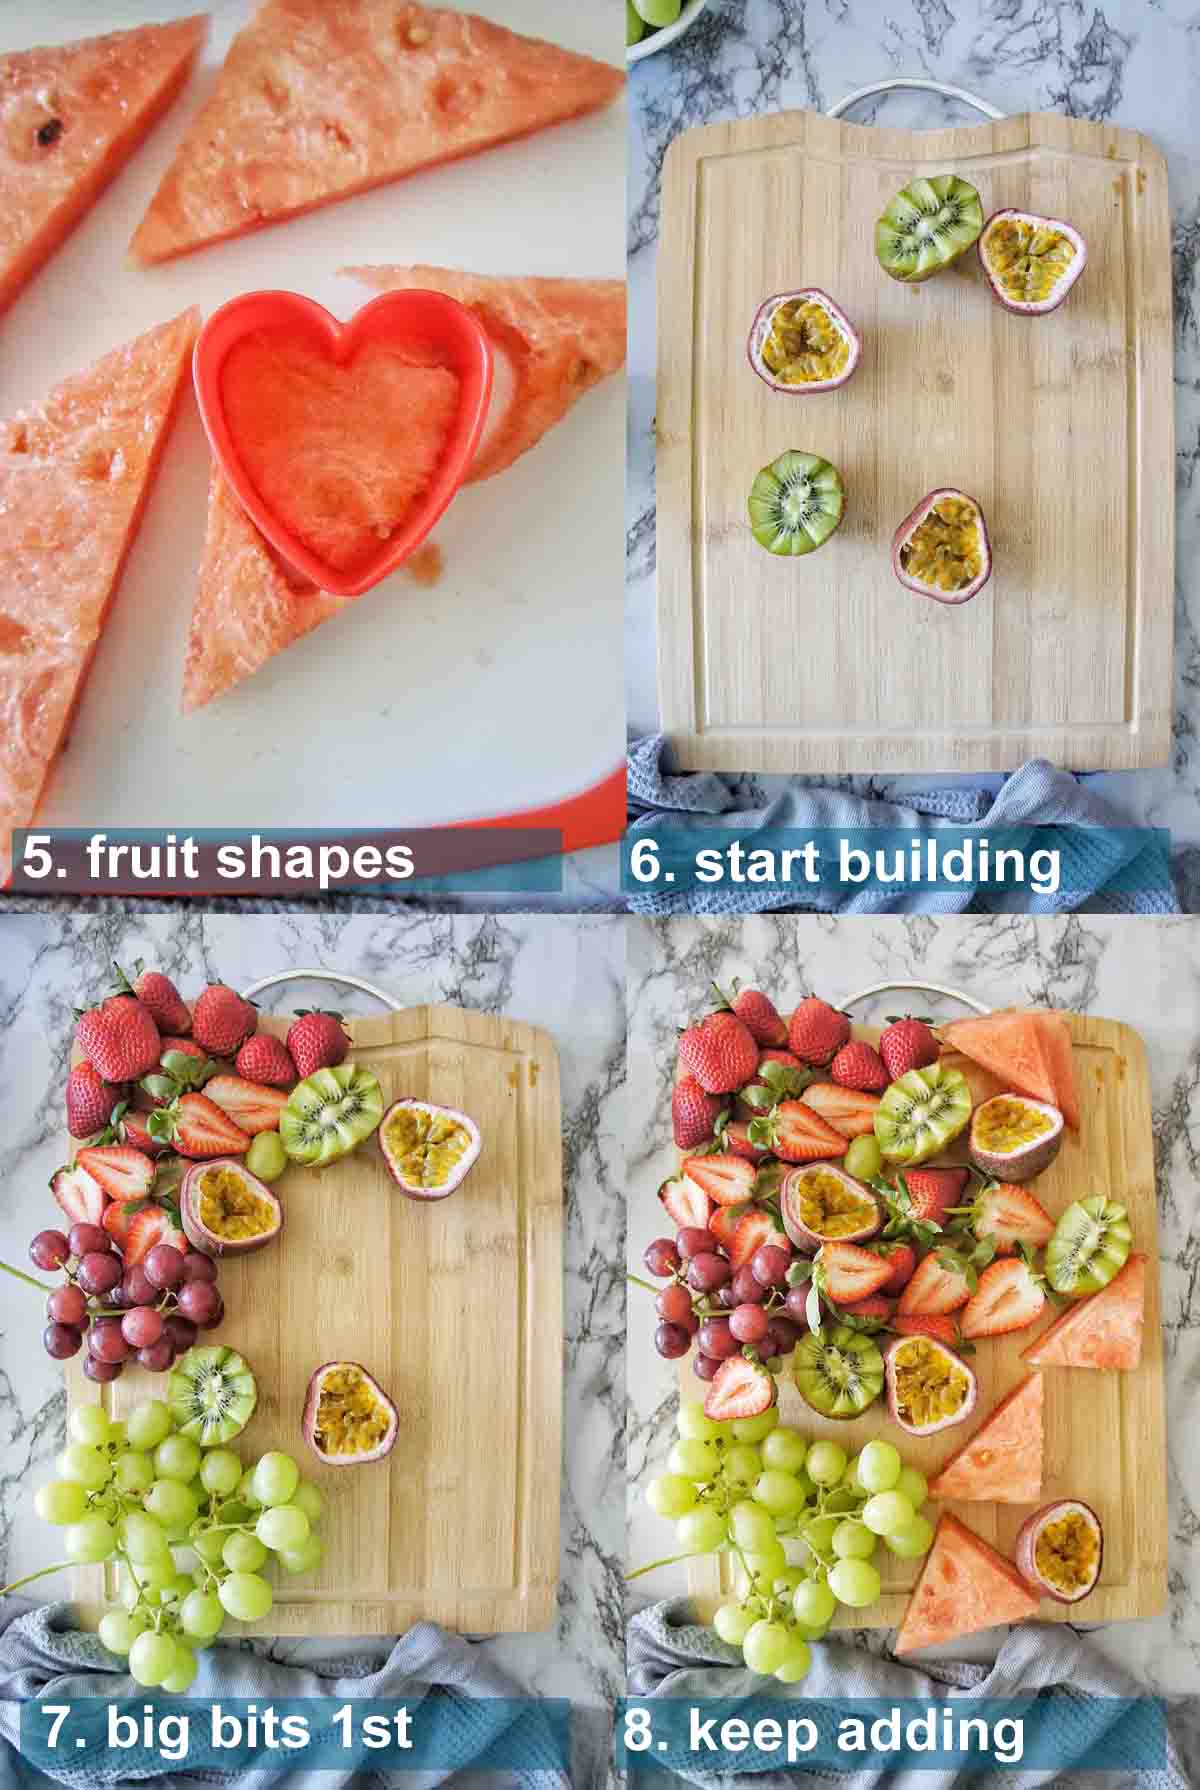 Fruit platter method 5 to 8 with text over lay